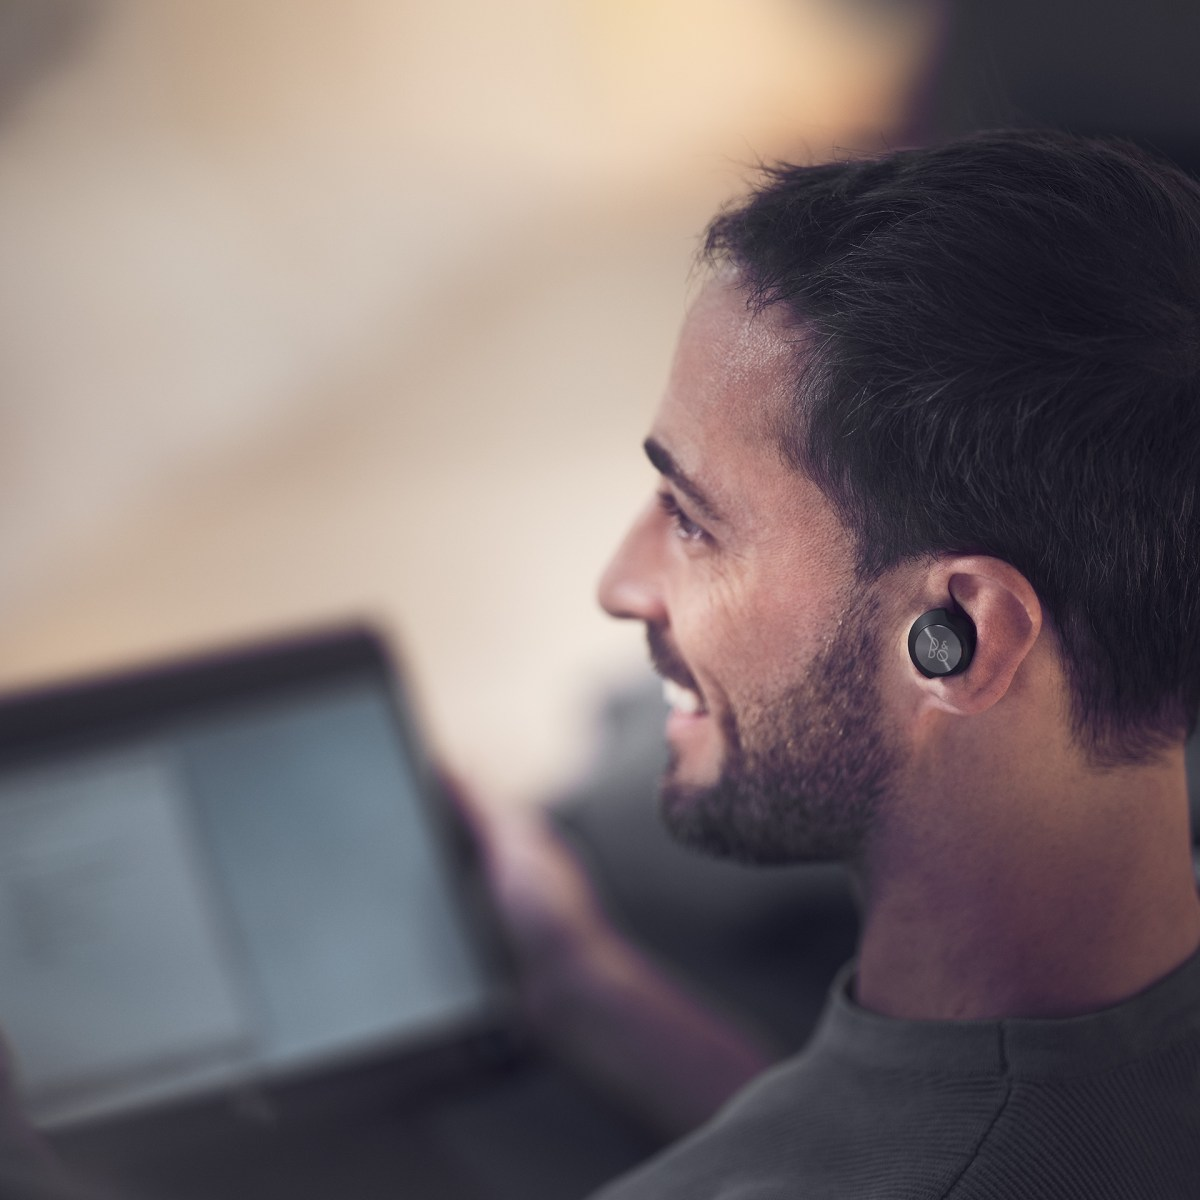 A man wearing Beoplay EQ while working from home